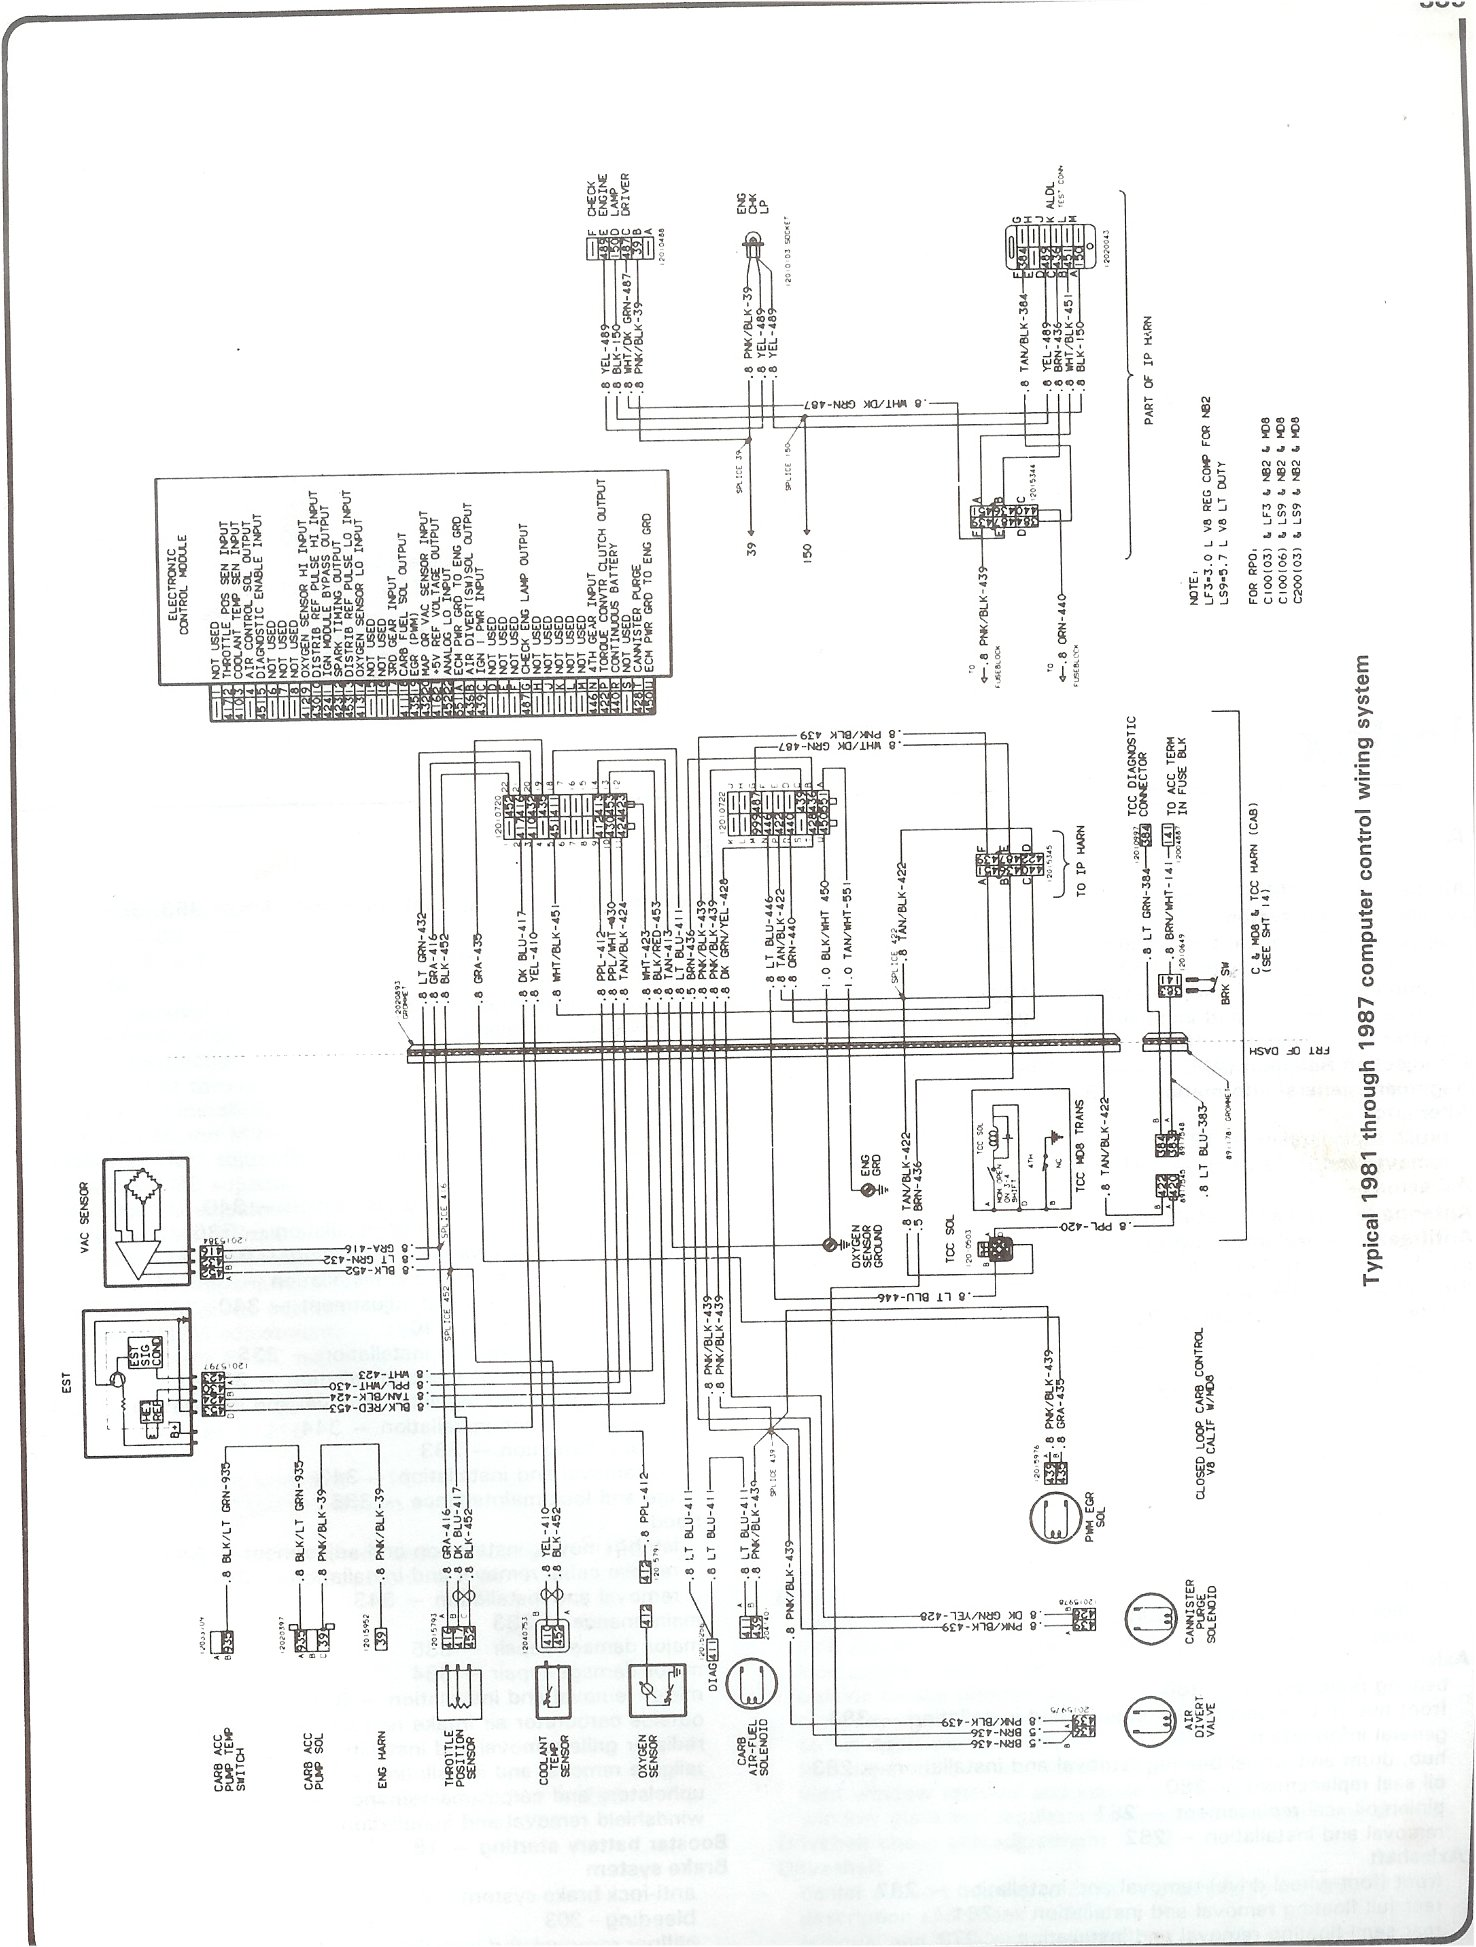 81 87_computer_control_wiring complete 73 87 wiring diagrams 1989 Chevy 1500 Wiring Diagram at mifinder.co